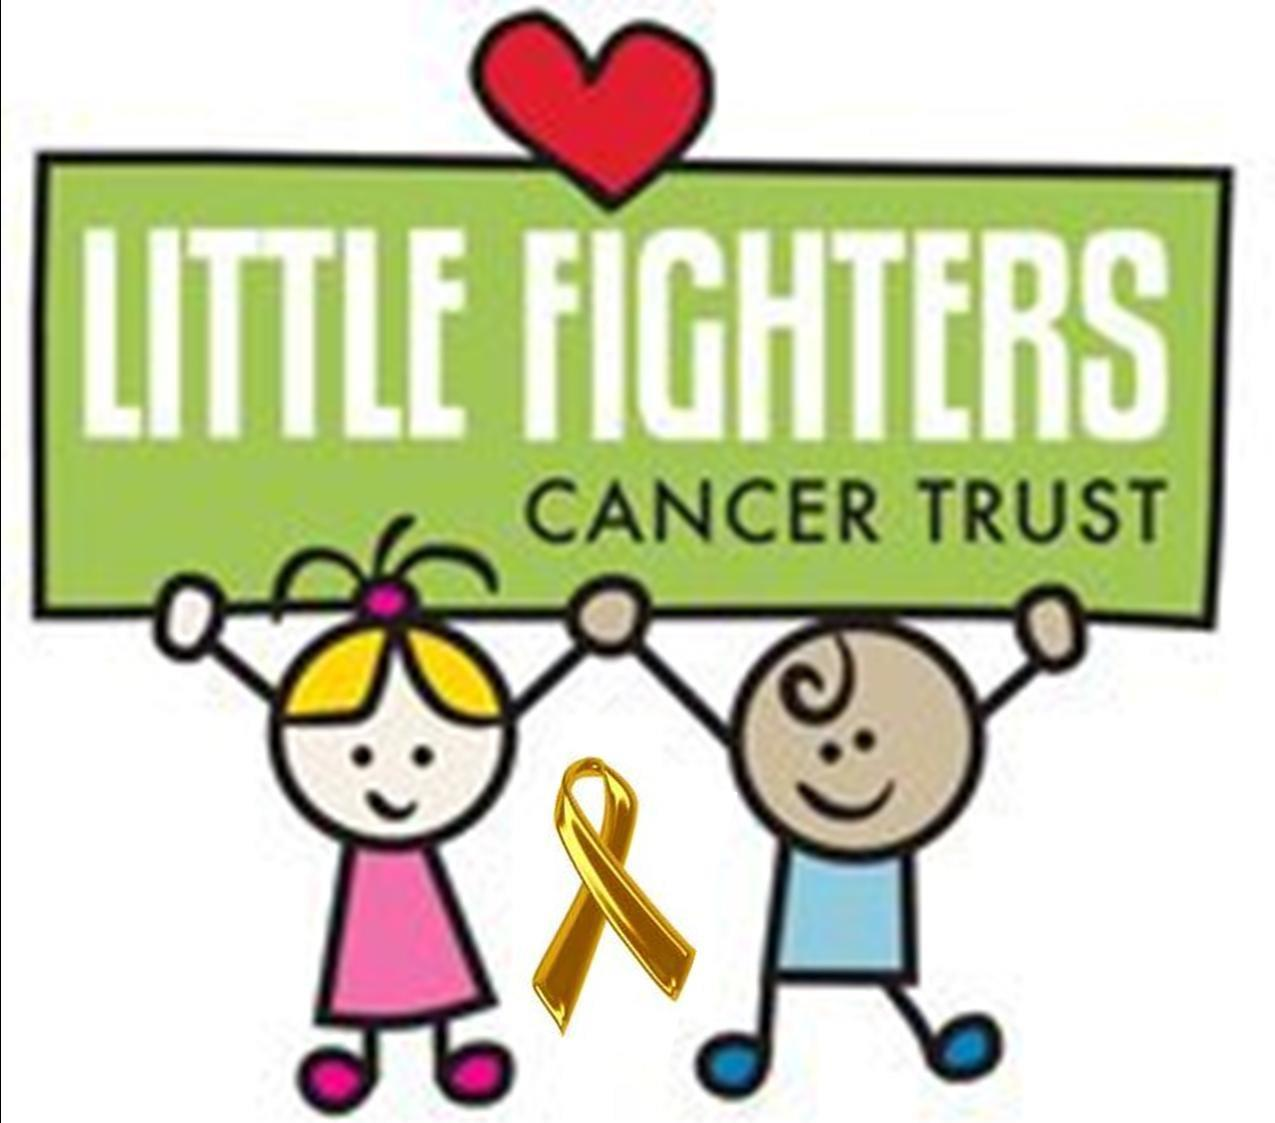 Little Fighters Cancer Trust Projects